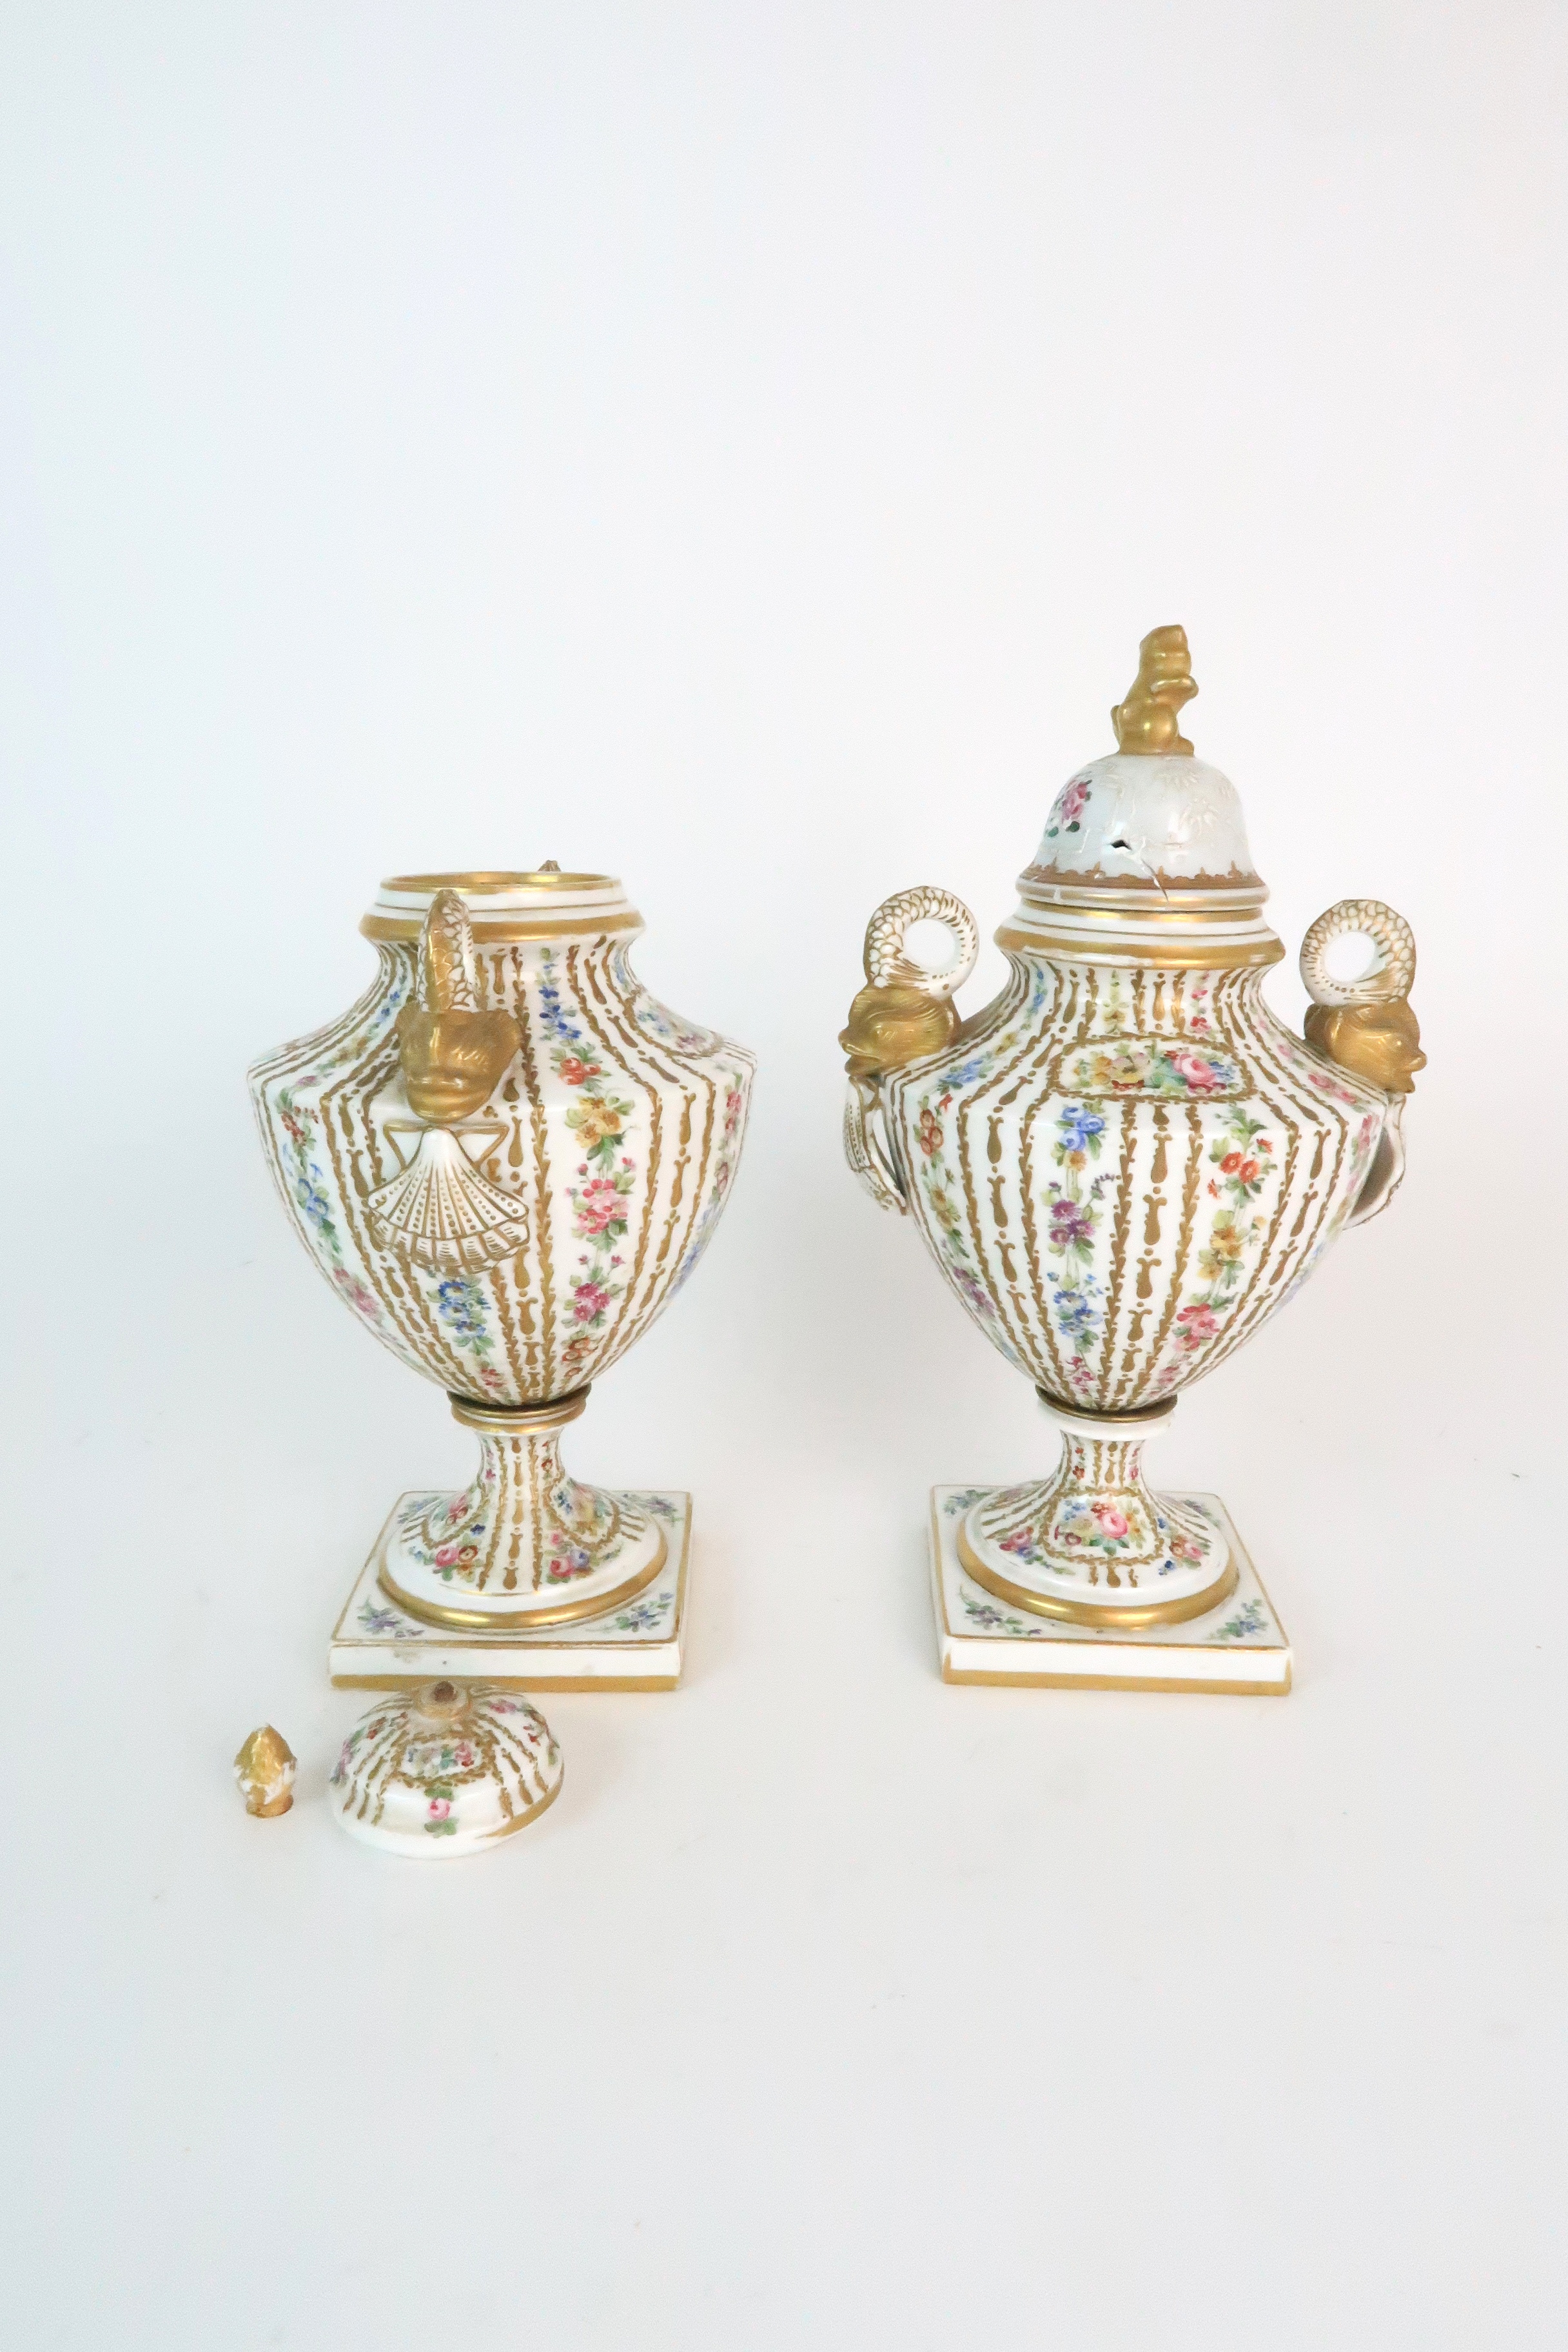 A PAIR OF CONTINENTAL PORCELAIN URNS each decorated with strings of flowers and gilt dot and dash - Image 3 of 16